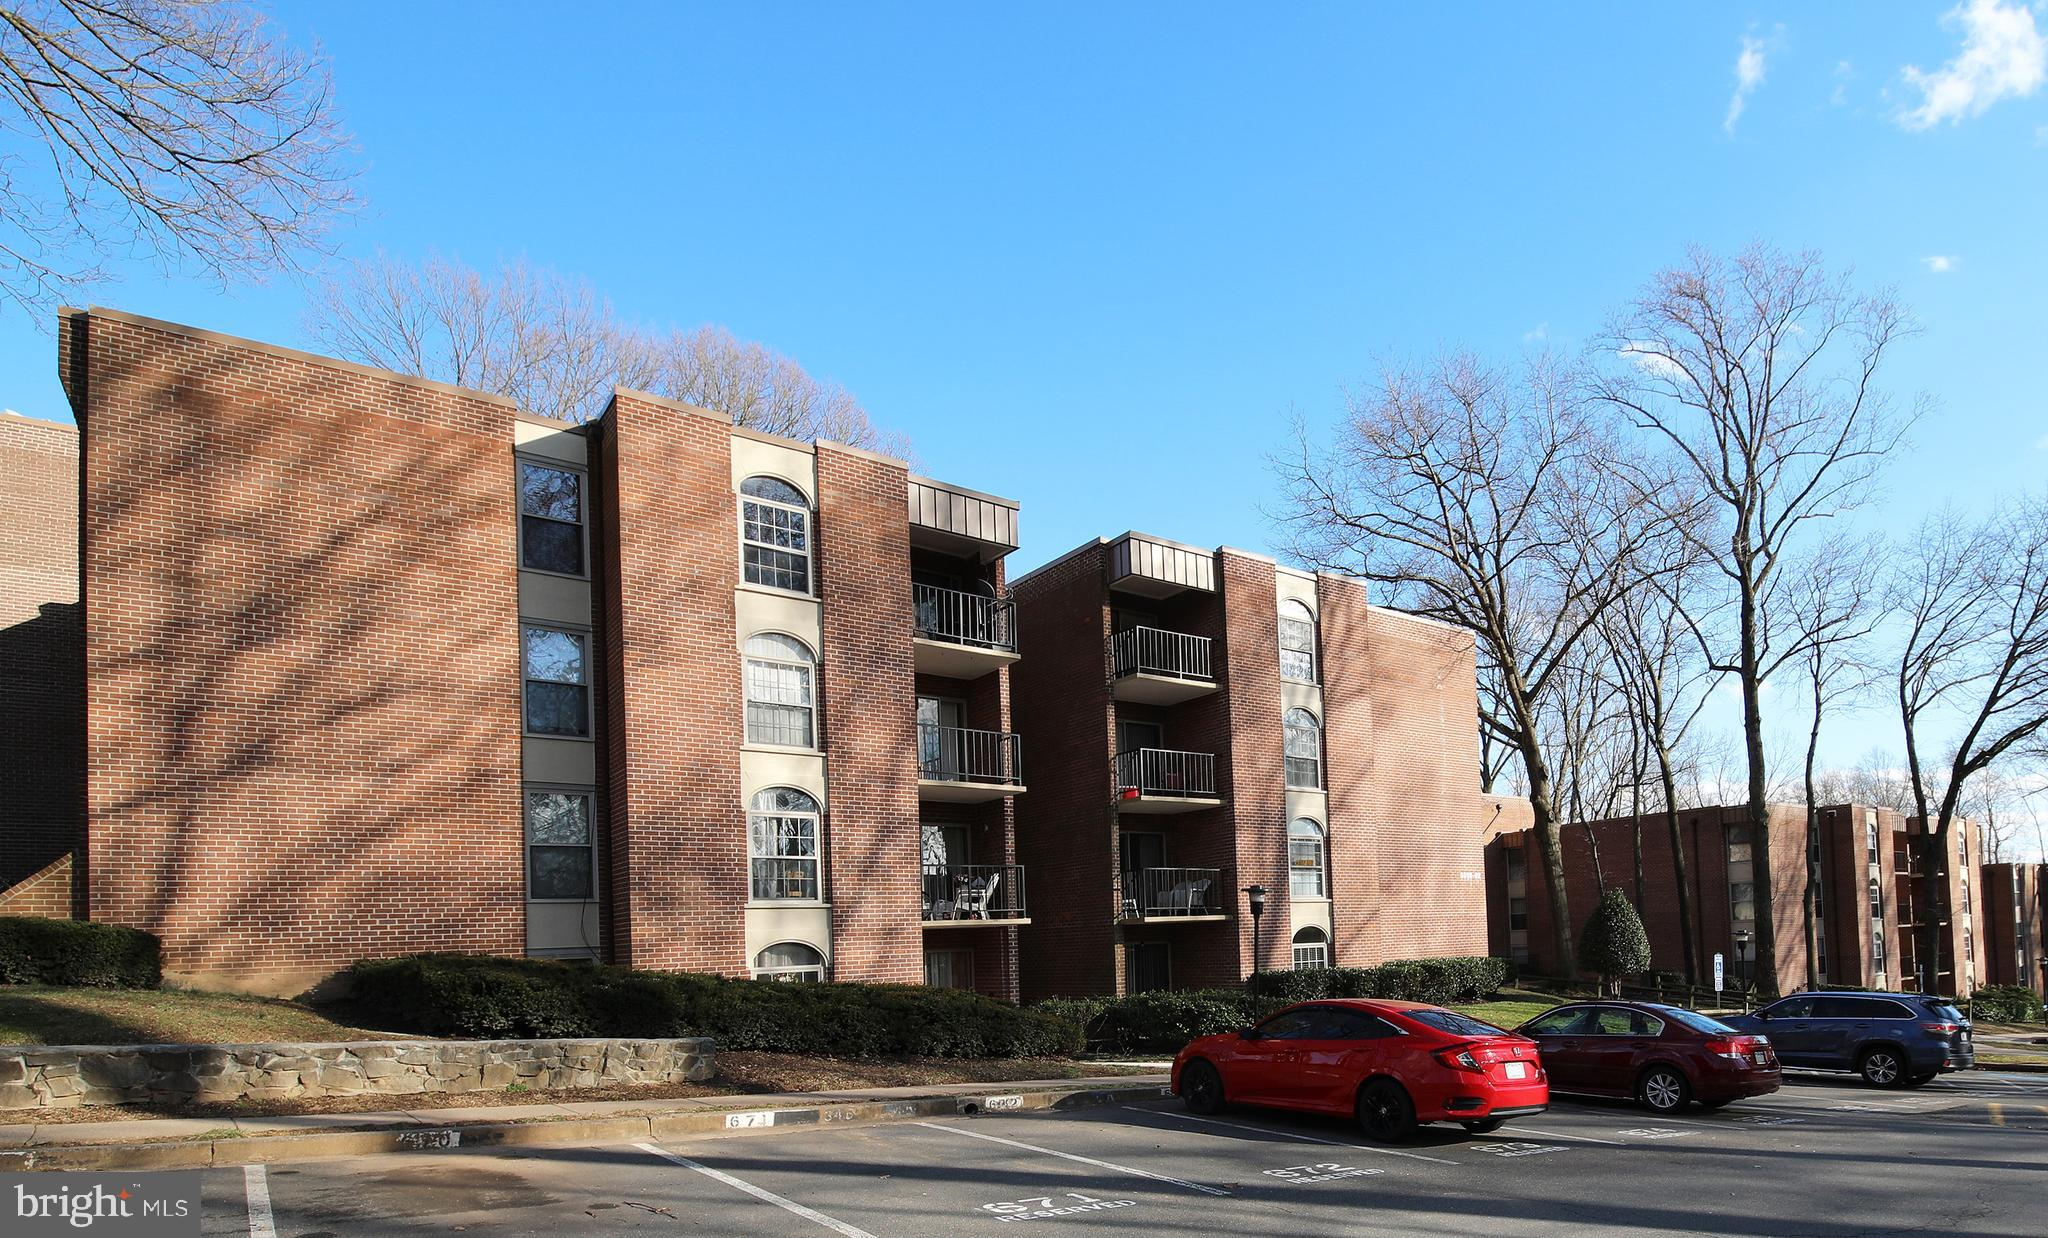 Wonderful large 2br/1.5 ba condo at Woodburn Village. Just steps from Fairfax Hospital - minutes from I-495, I-66 and Tysons Corner. Convenient to bus and metro, Mosaic etc.  Woodburn Village is a garden community with great common grounds, picnic areas, sports courts and outdoor pool. The condo fee includes all utilities. Extra storage in basement.